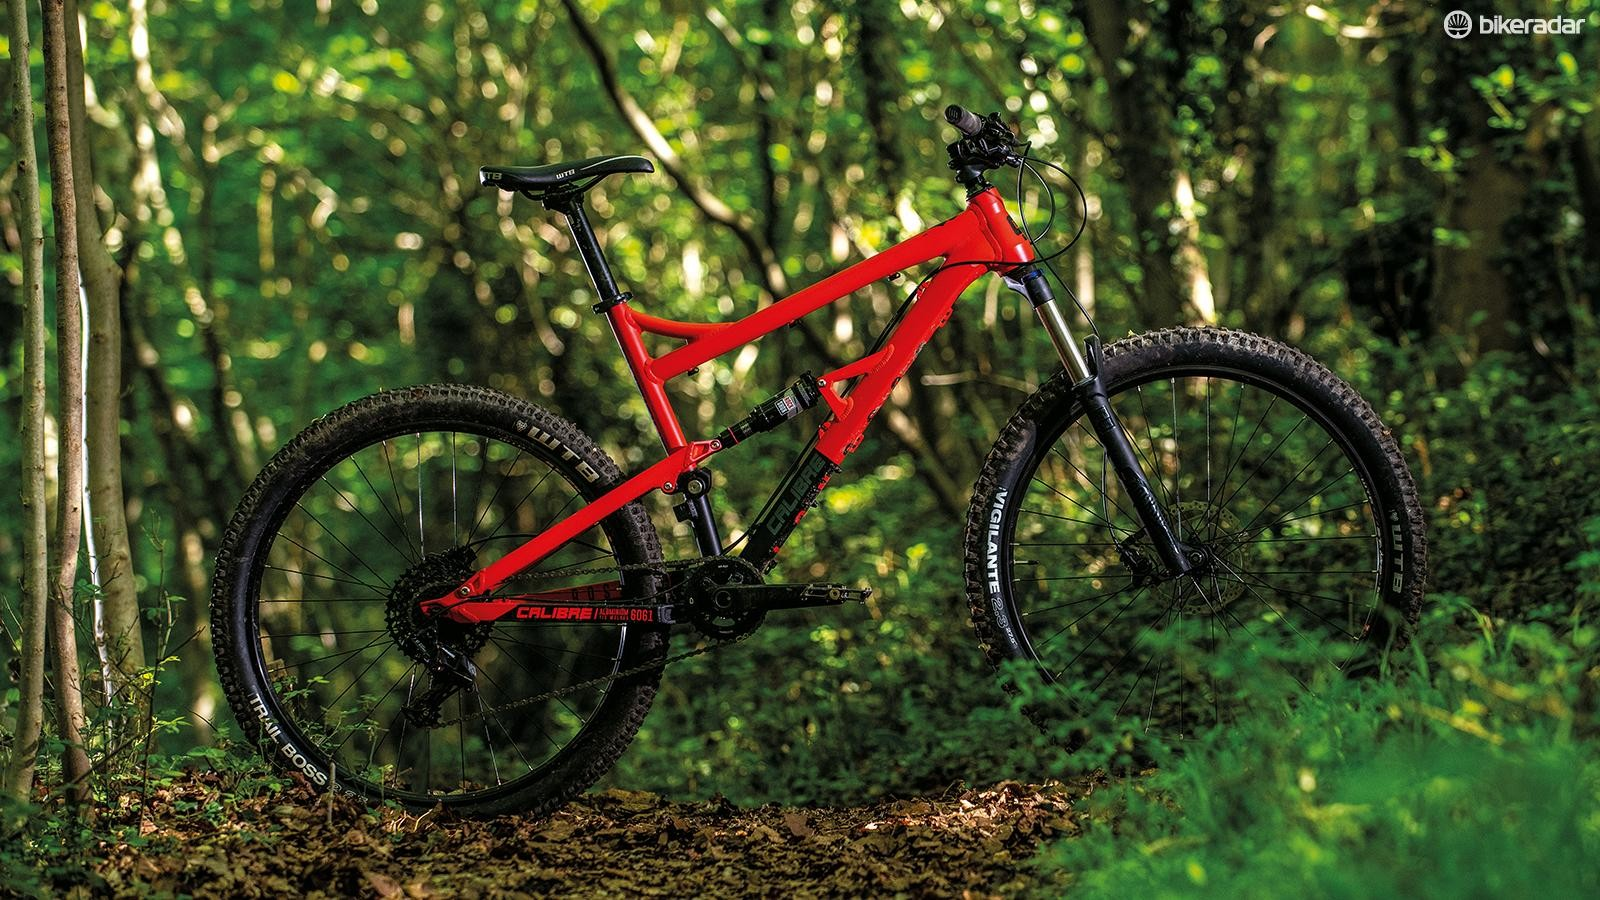 The fork, wheels, bar/stem and 1x11 transmission are on point and it's got a great set of brakes for the price too